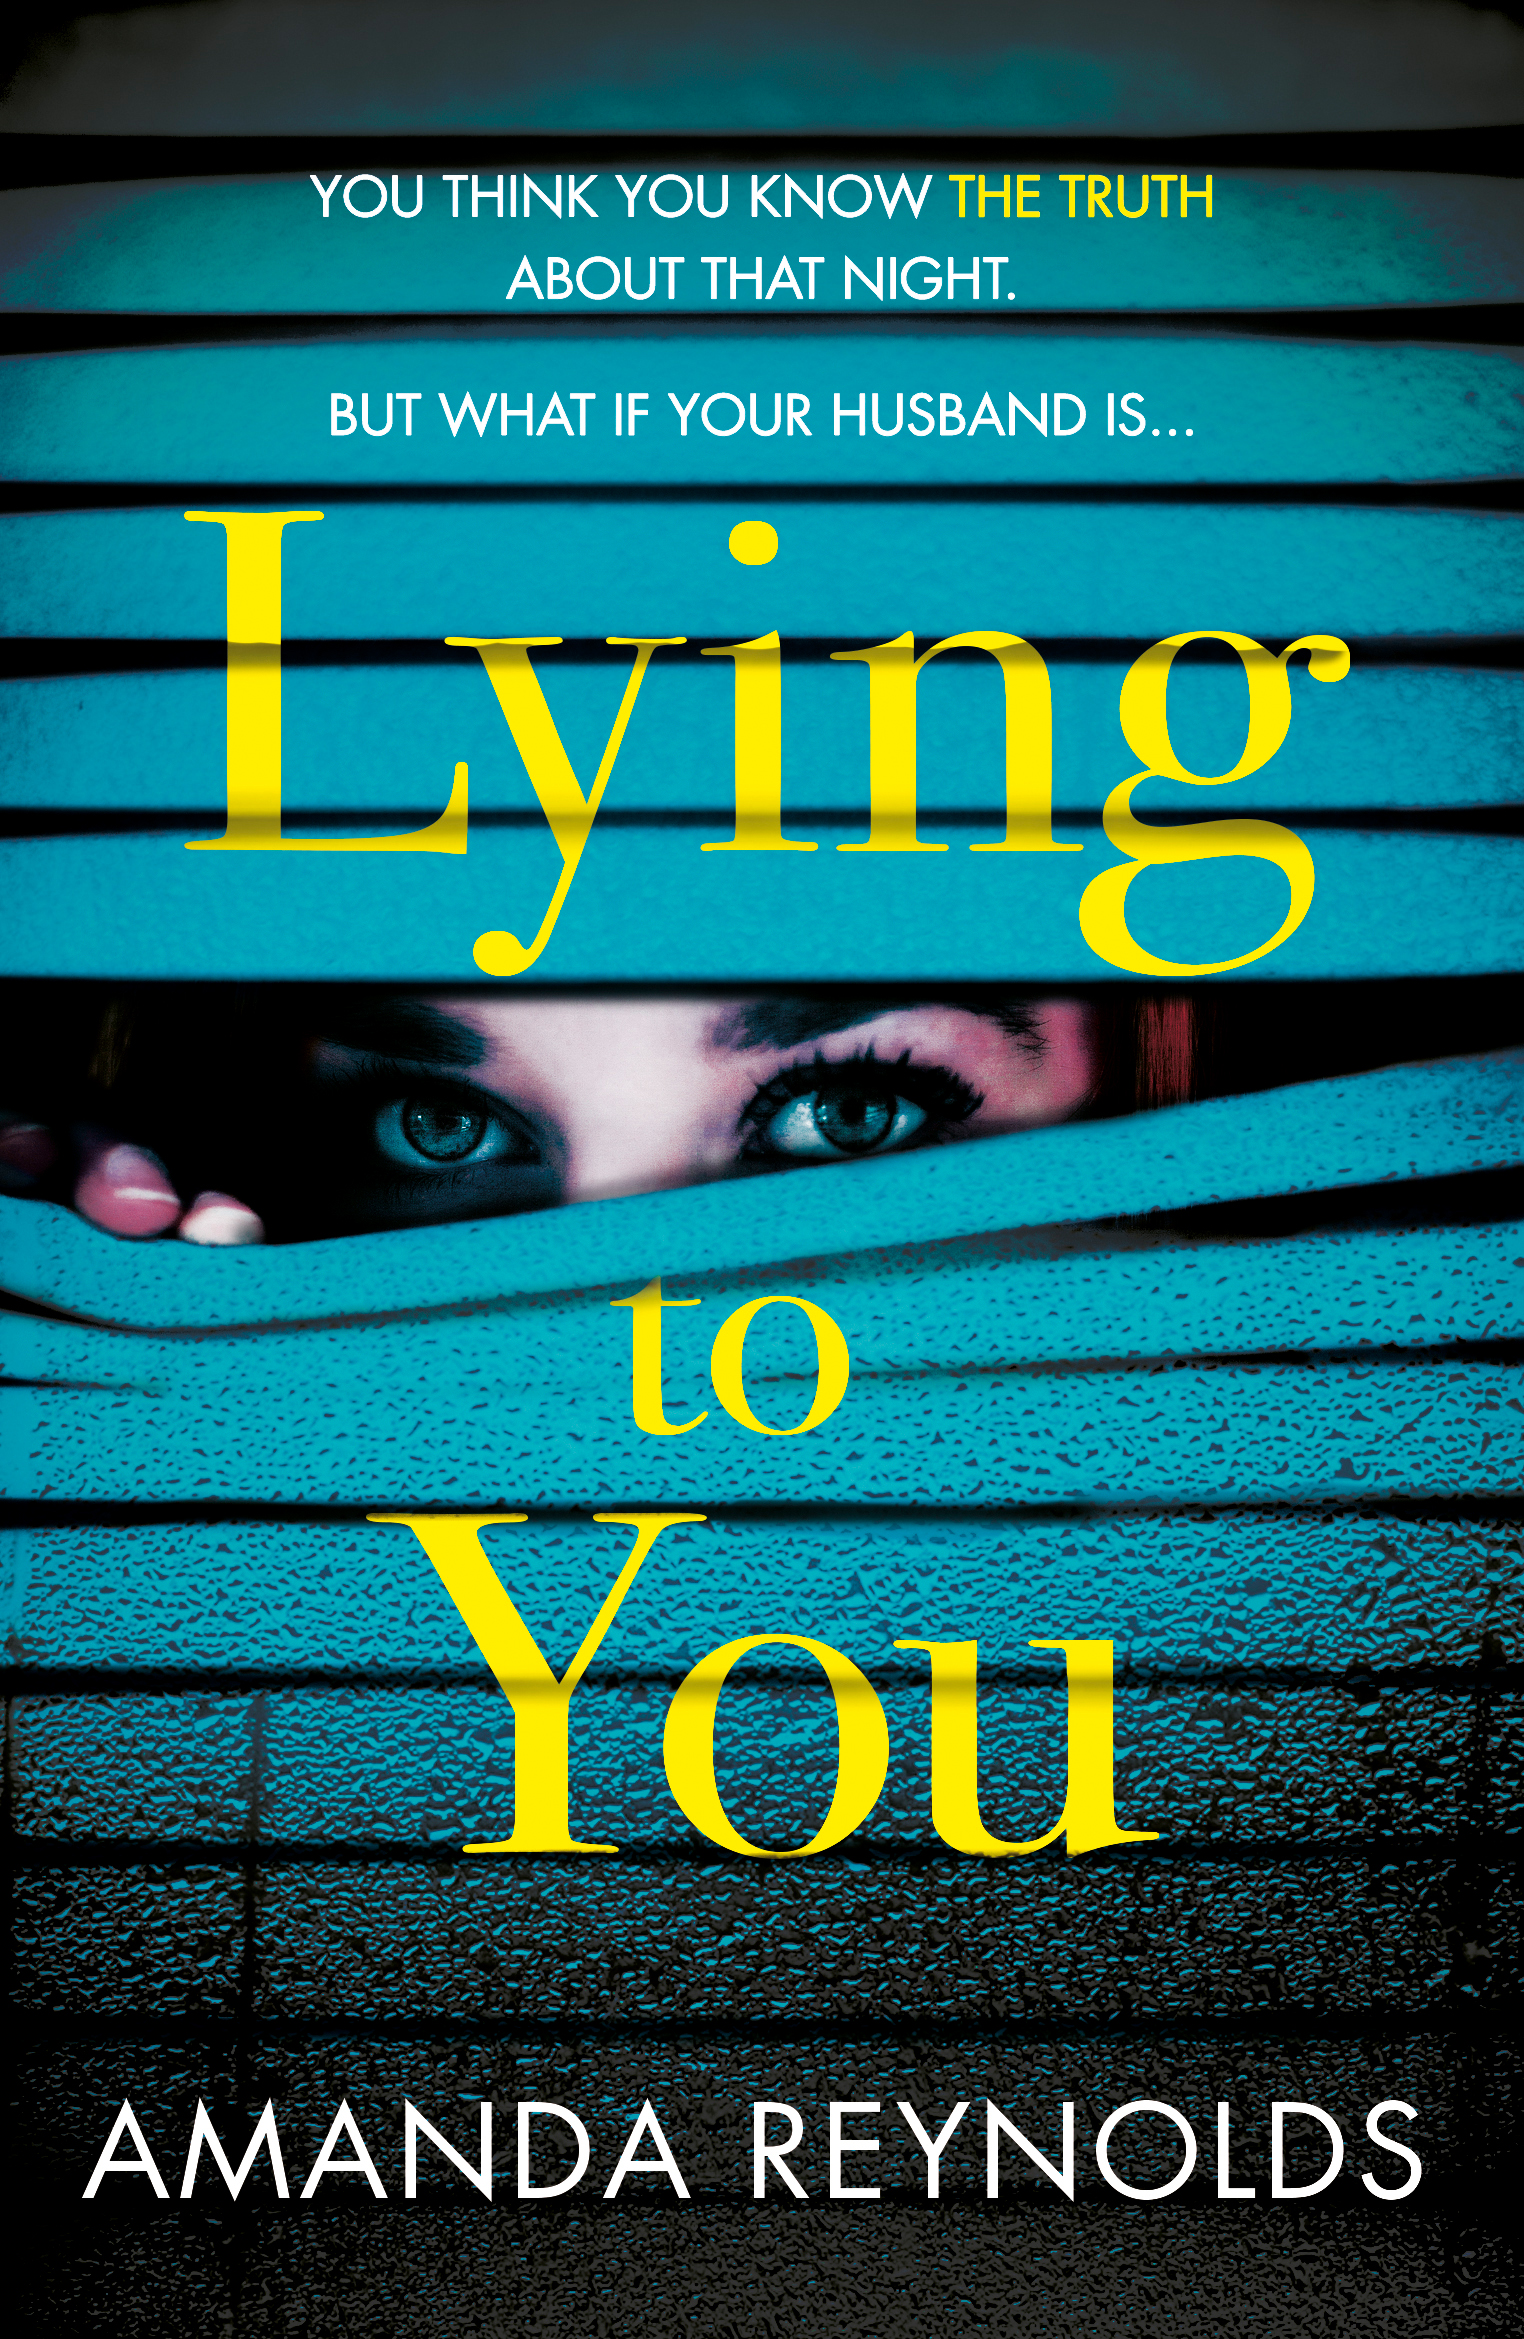 Buy  here .  The lies we tell ourselves are the worst kind, for we have all  the time in the world to convince ourselves they are true…  When Jess Tidy was Mark Winter's student, she made a shocking accusation. Mark maintained his innocence, but the damage was done. Karen Winter stood by her husband through everything, determined to protect her family. Now, ten years later, Jess is back. And the truth about that night is finally going to come out…  You'd know if you were lying to yourself, wouldn't you?